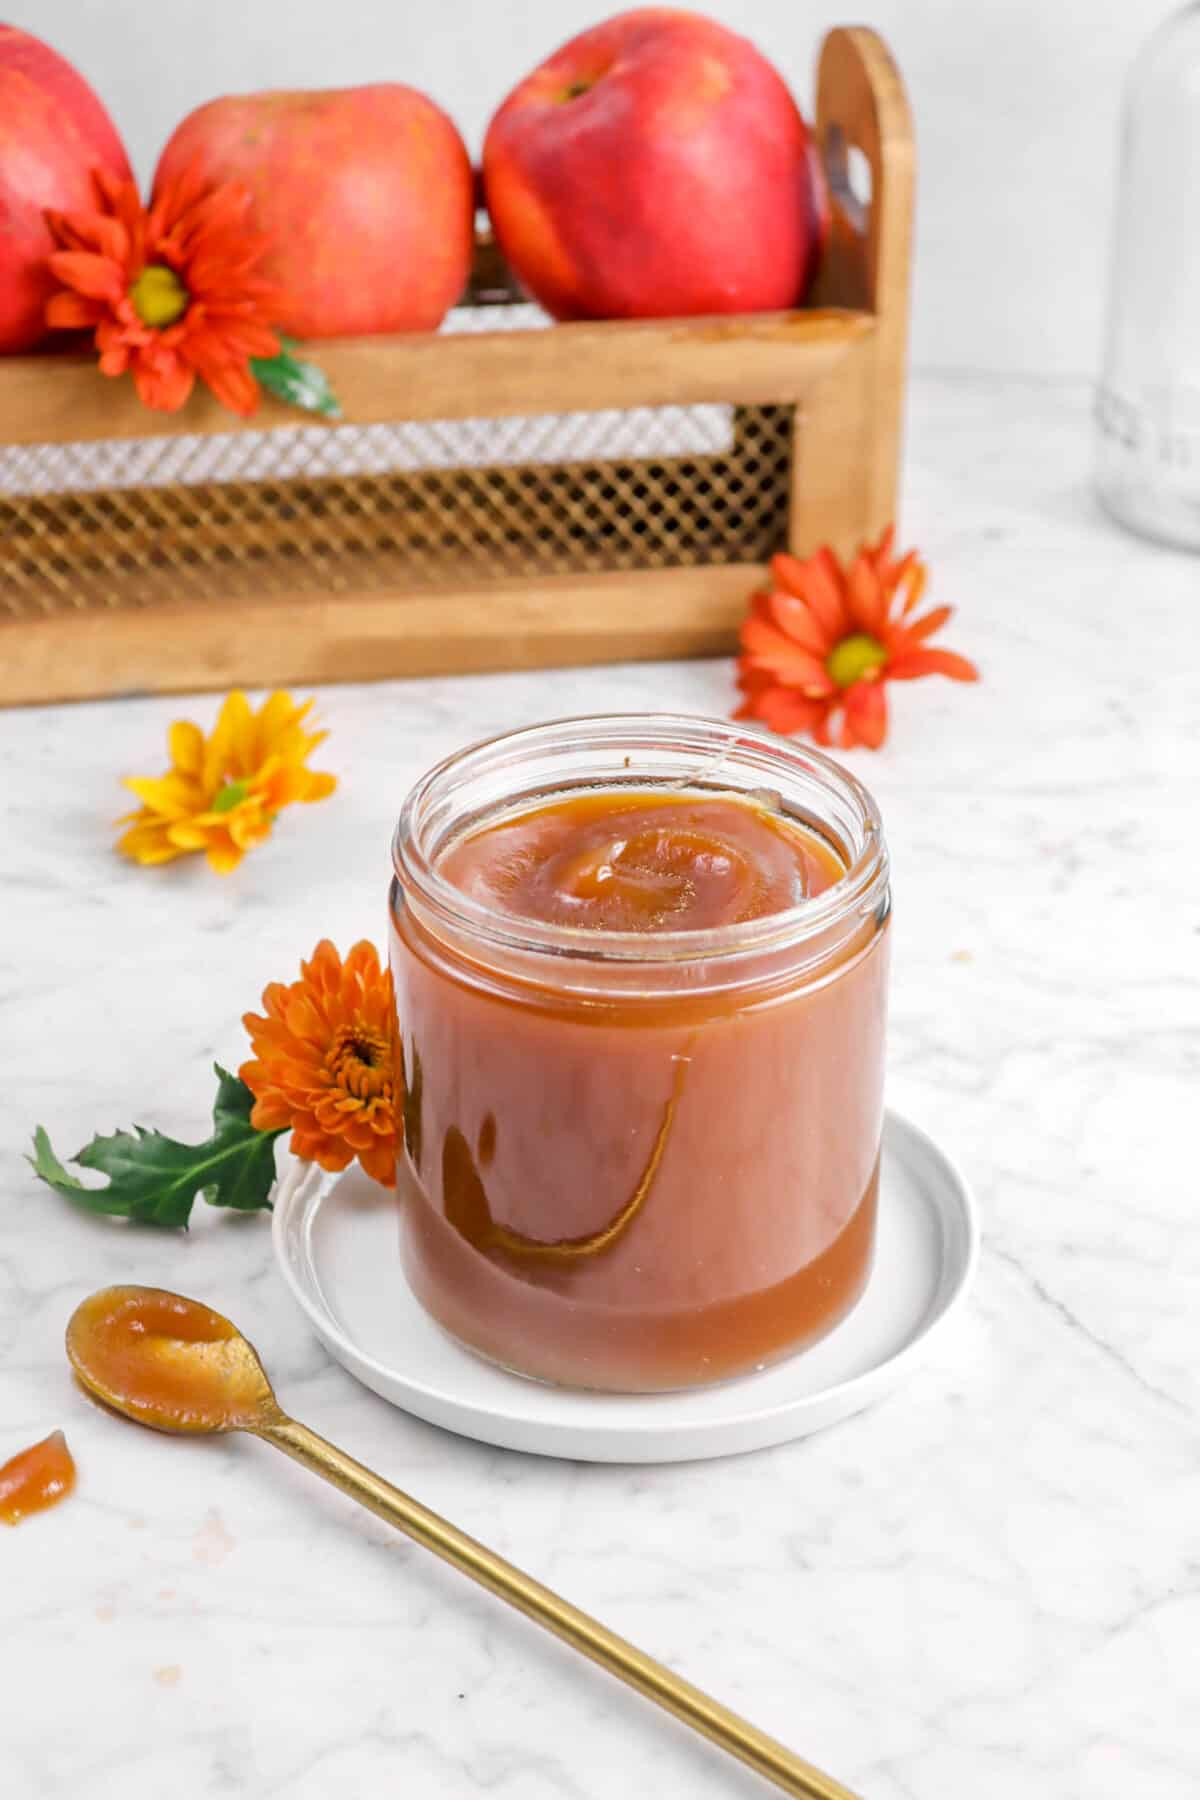 apple butter in a jar with flowers, a white plate, a gold spoon, and apples behind